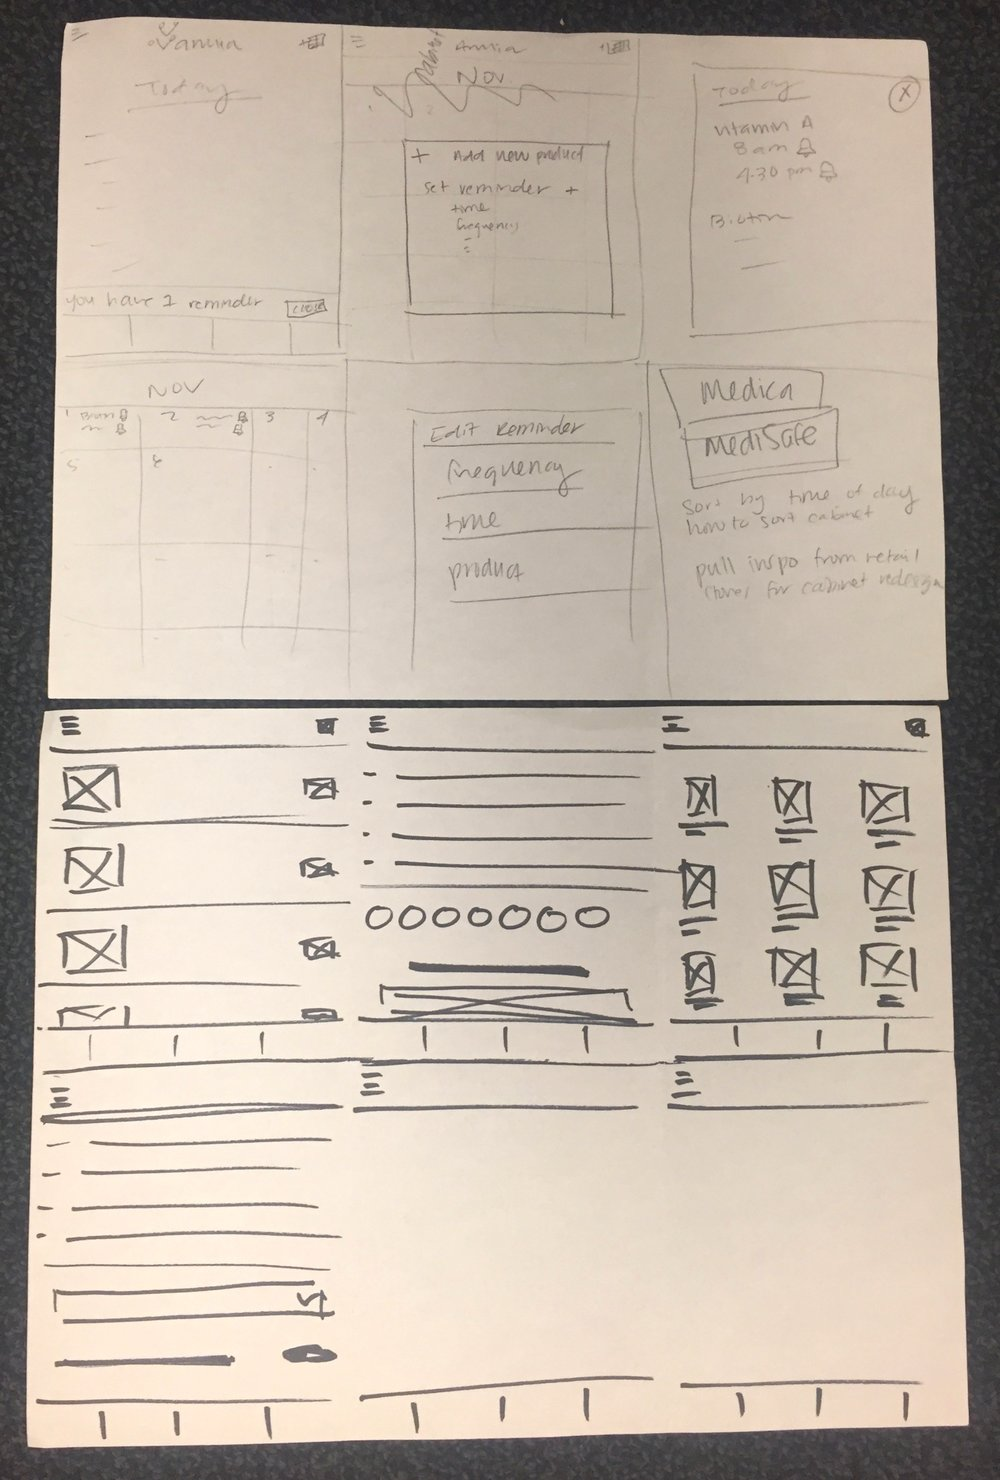 *Design Studio - a timed, 5 minute exercise in sketching. Each teammate aims to sketch 6 ideas for a specific design - ours tackled the reminder feature.